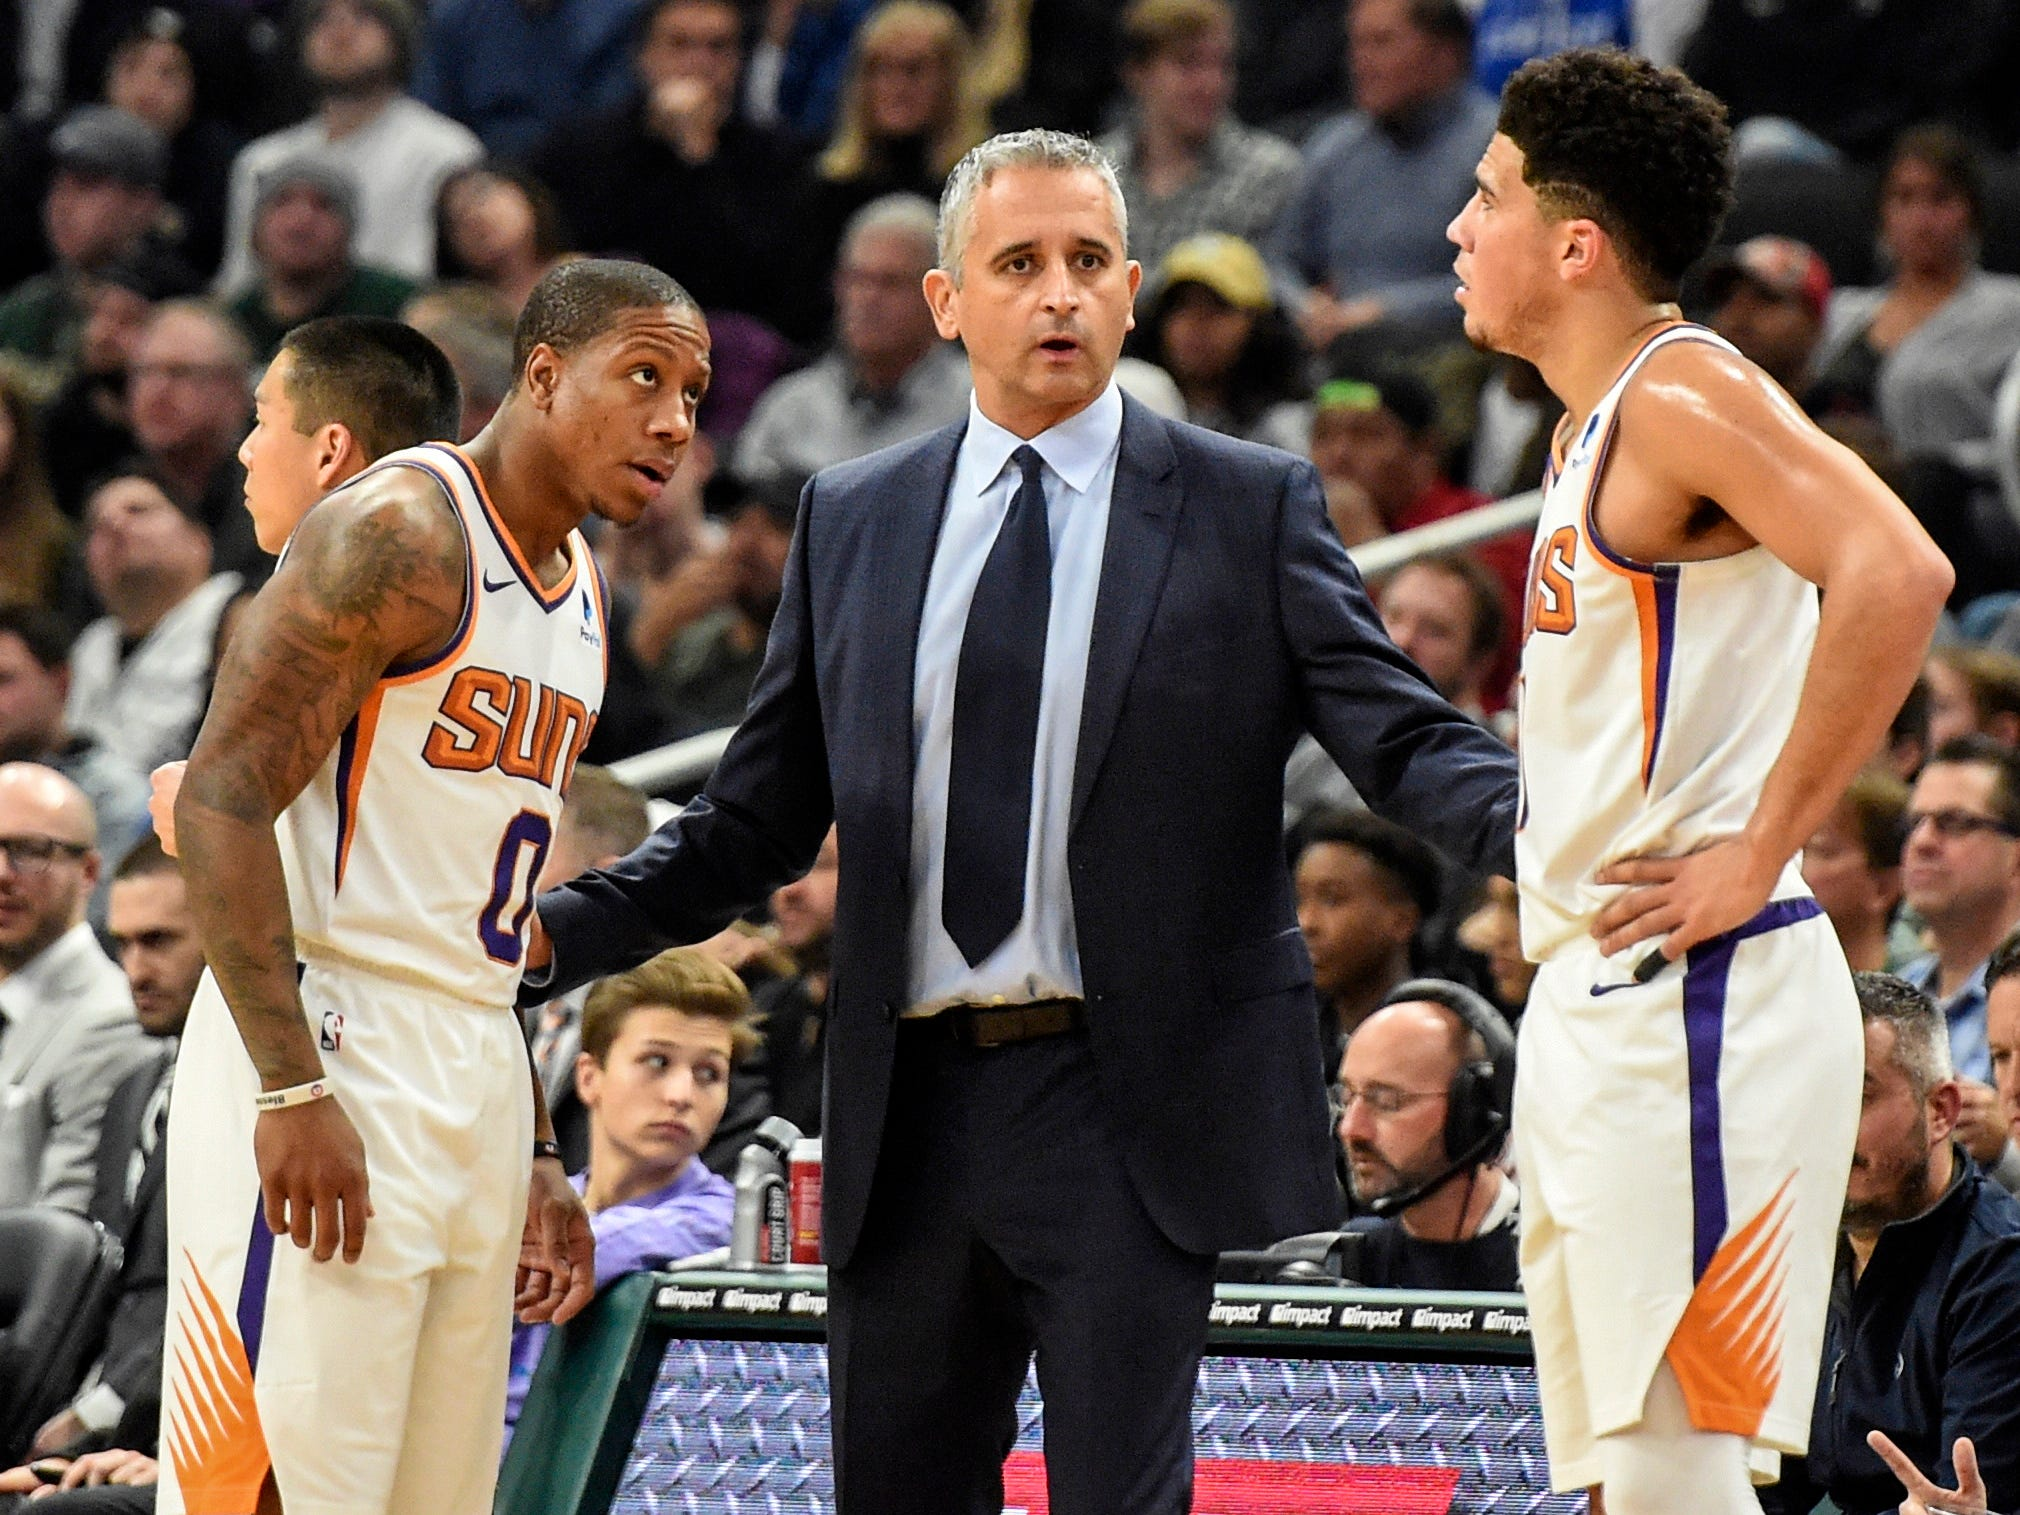 Suns coach Igor Kokoskov talks to guards Isaiah Canaan and Devin Booker during the first quarter of a game against the Milwaukee Bucks.